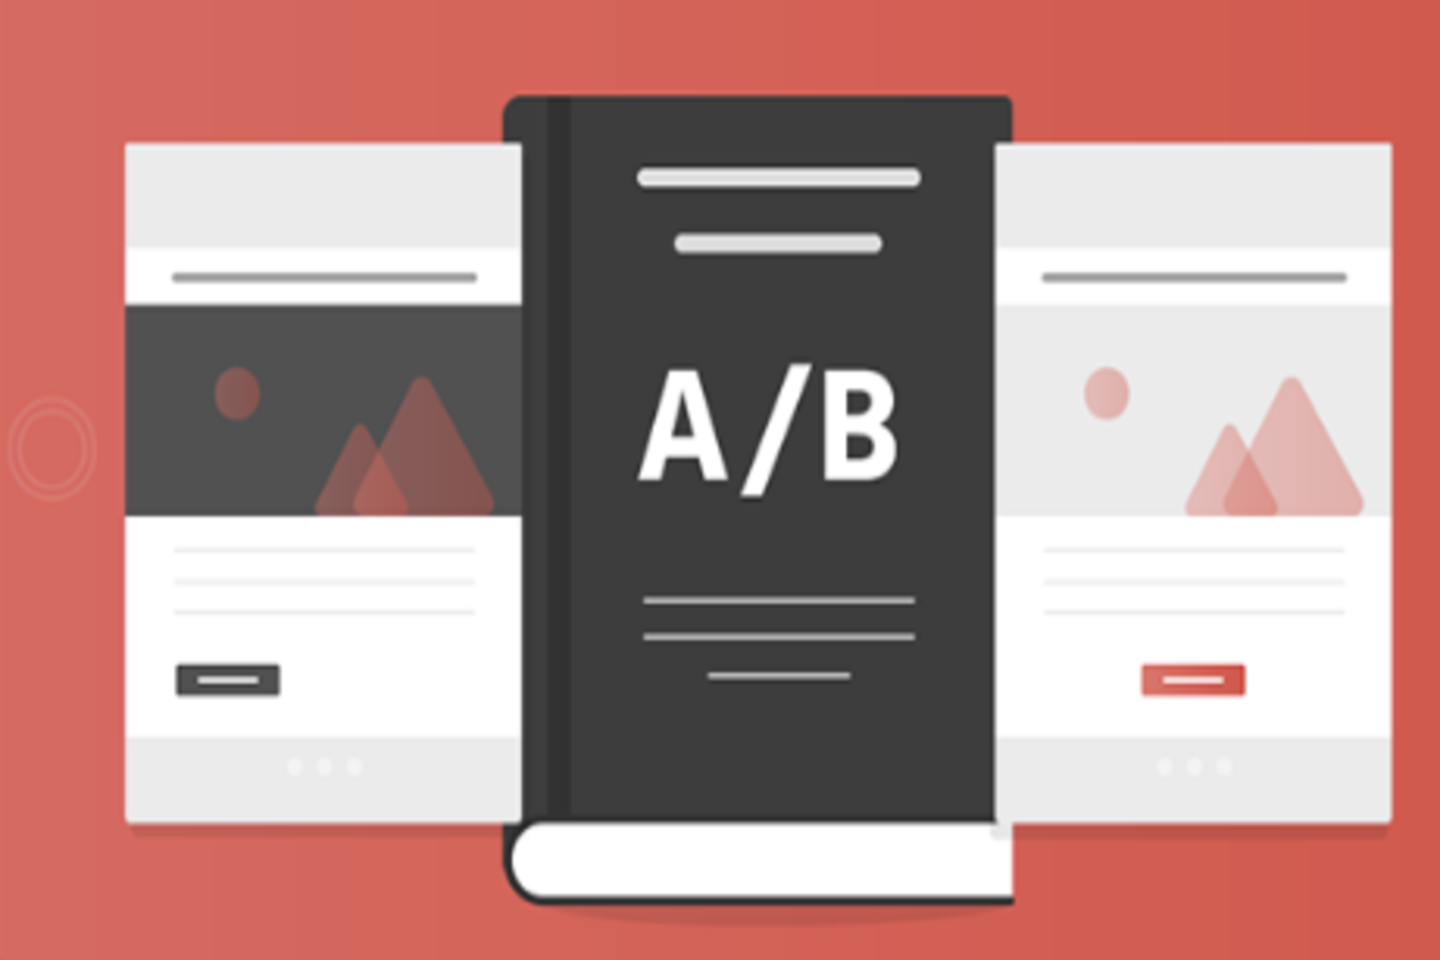 Alpha Vs Beta Testing and how they compare